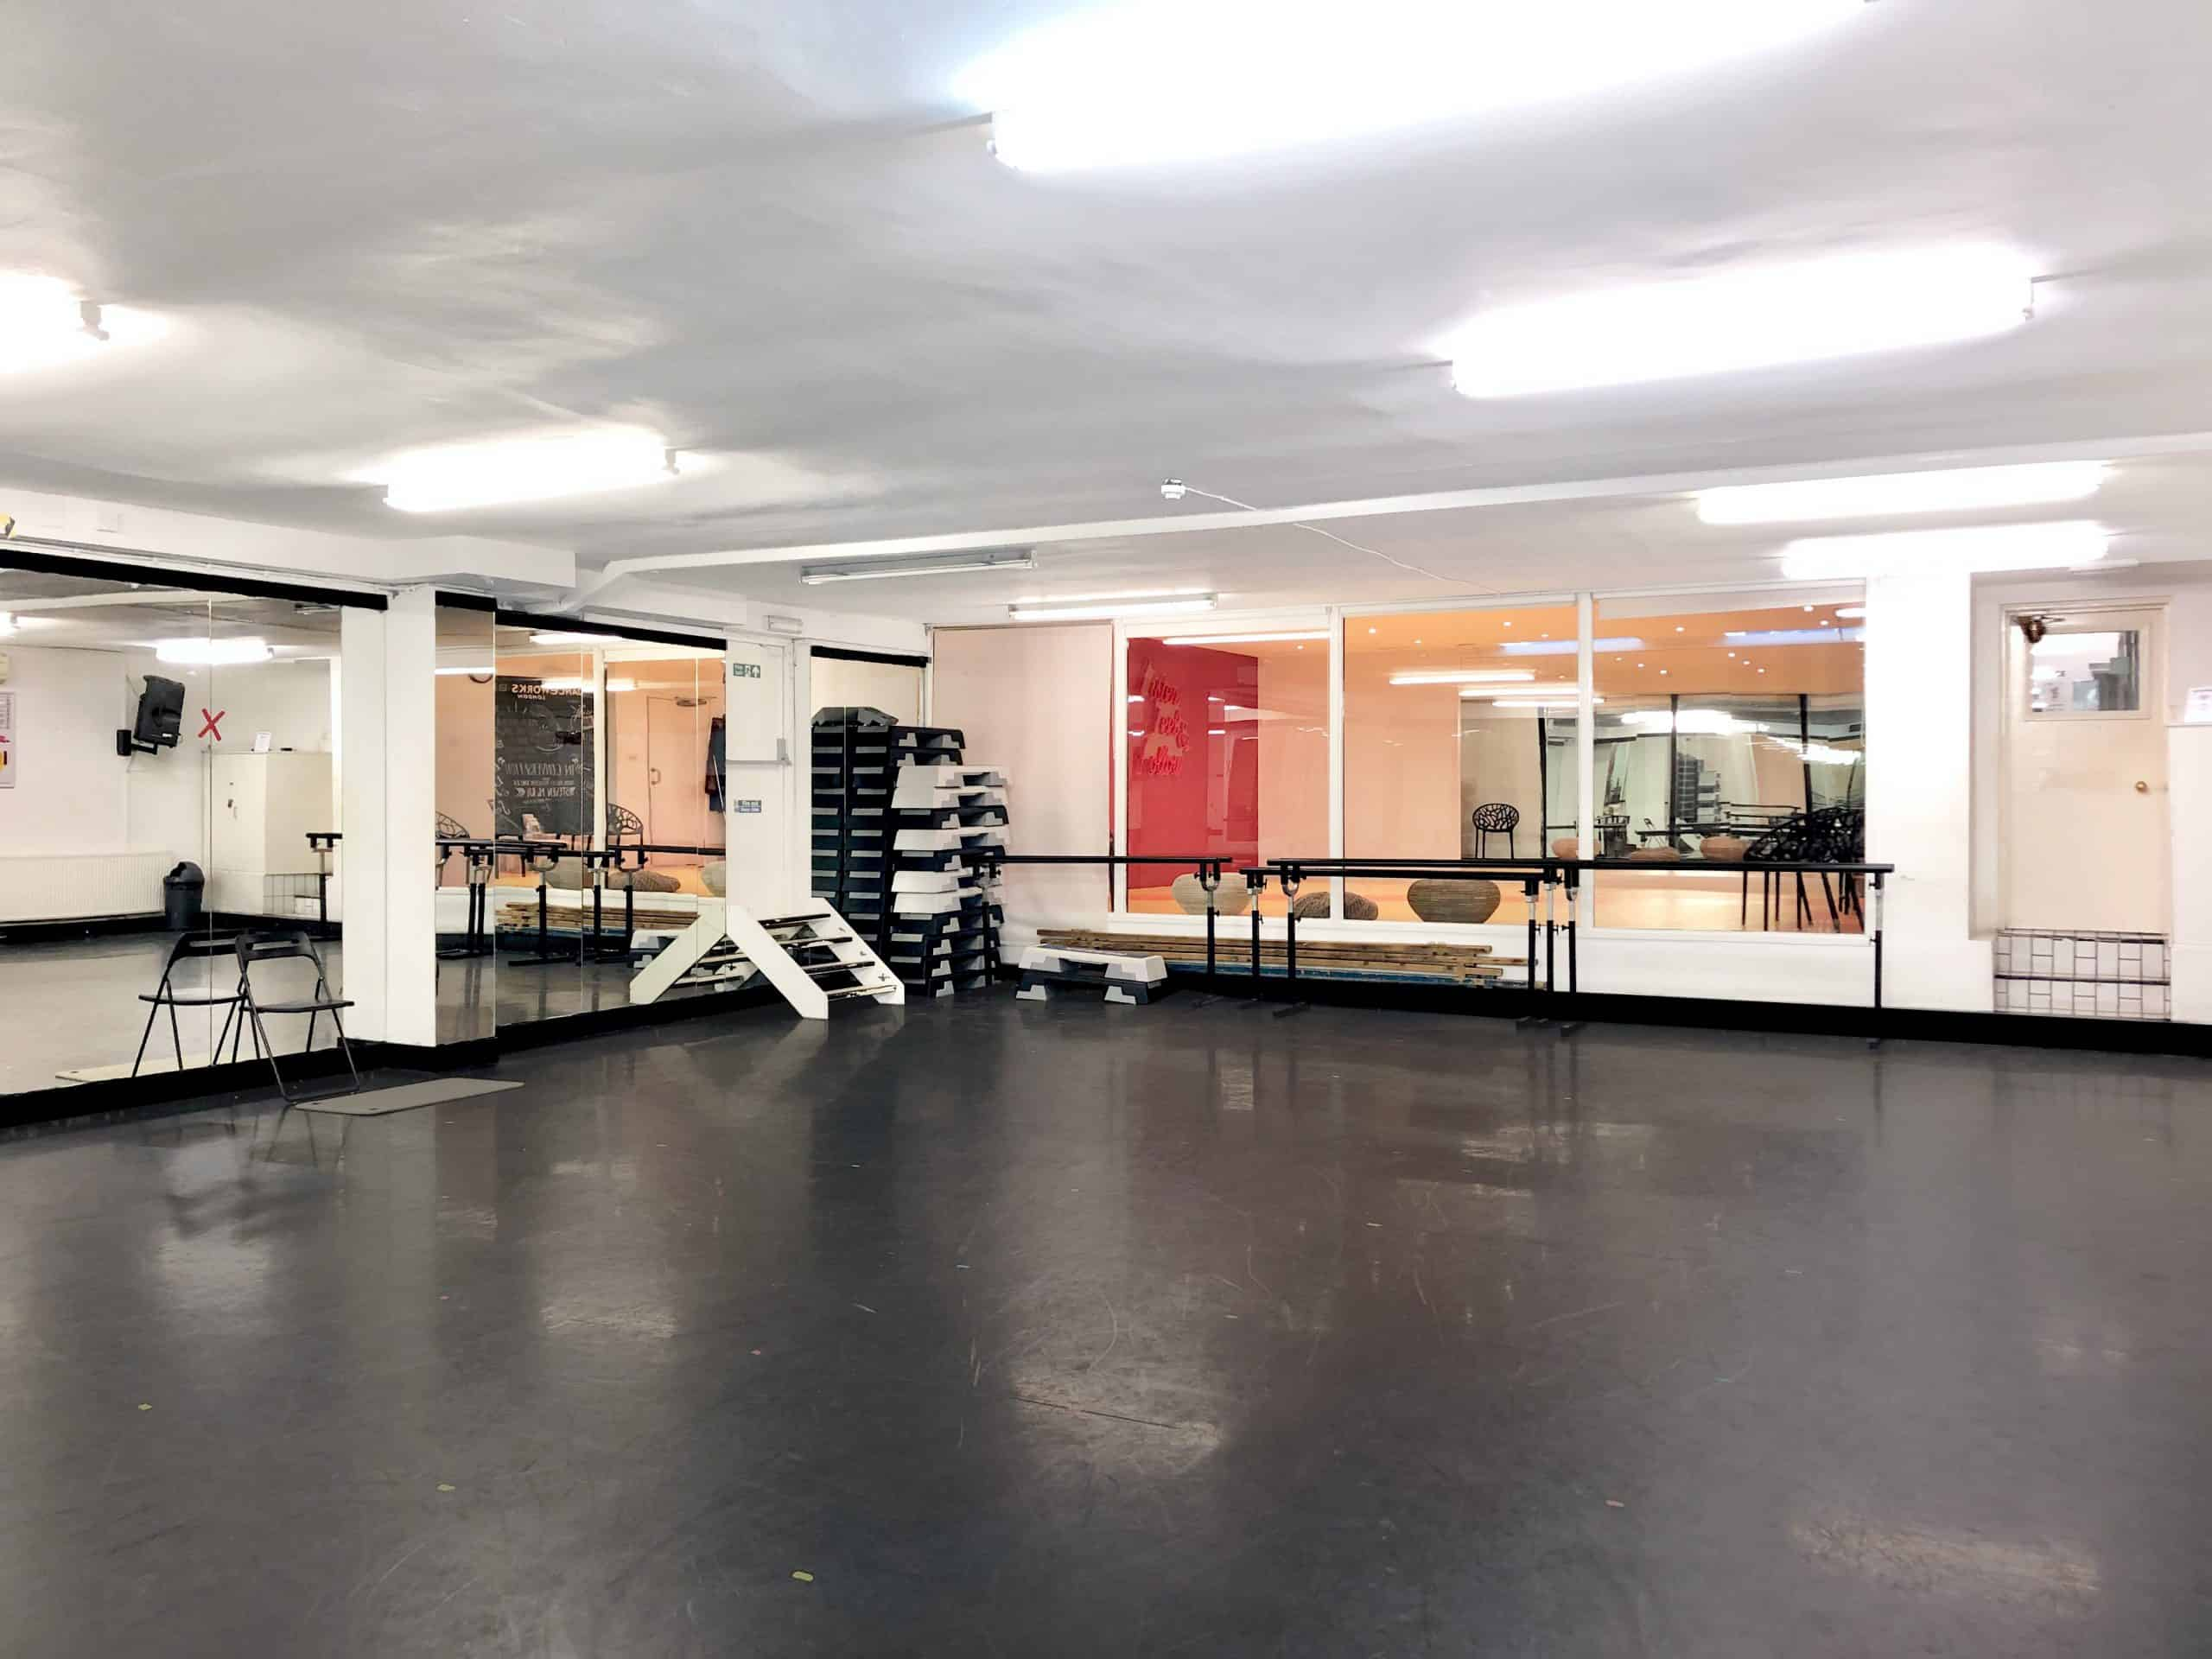 Studio 11 to hire at Danceworks